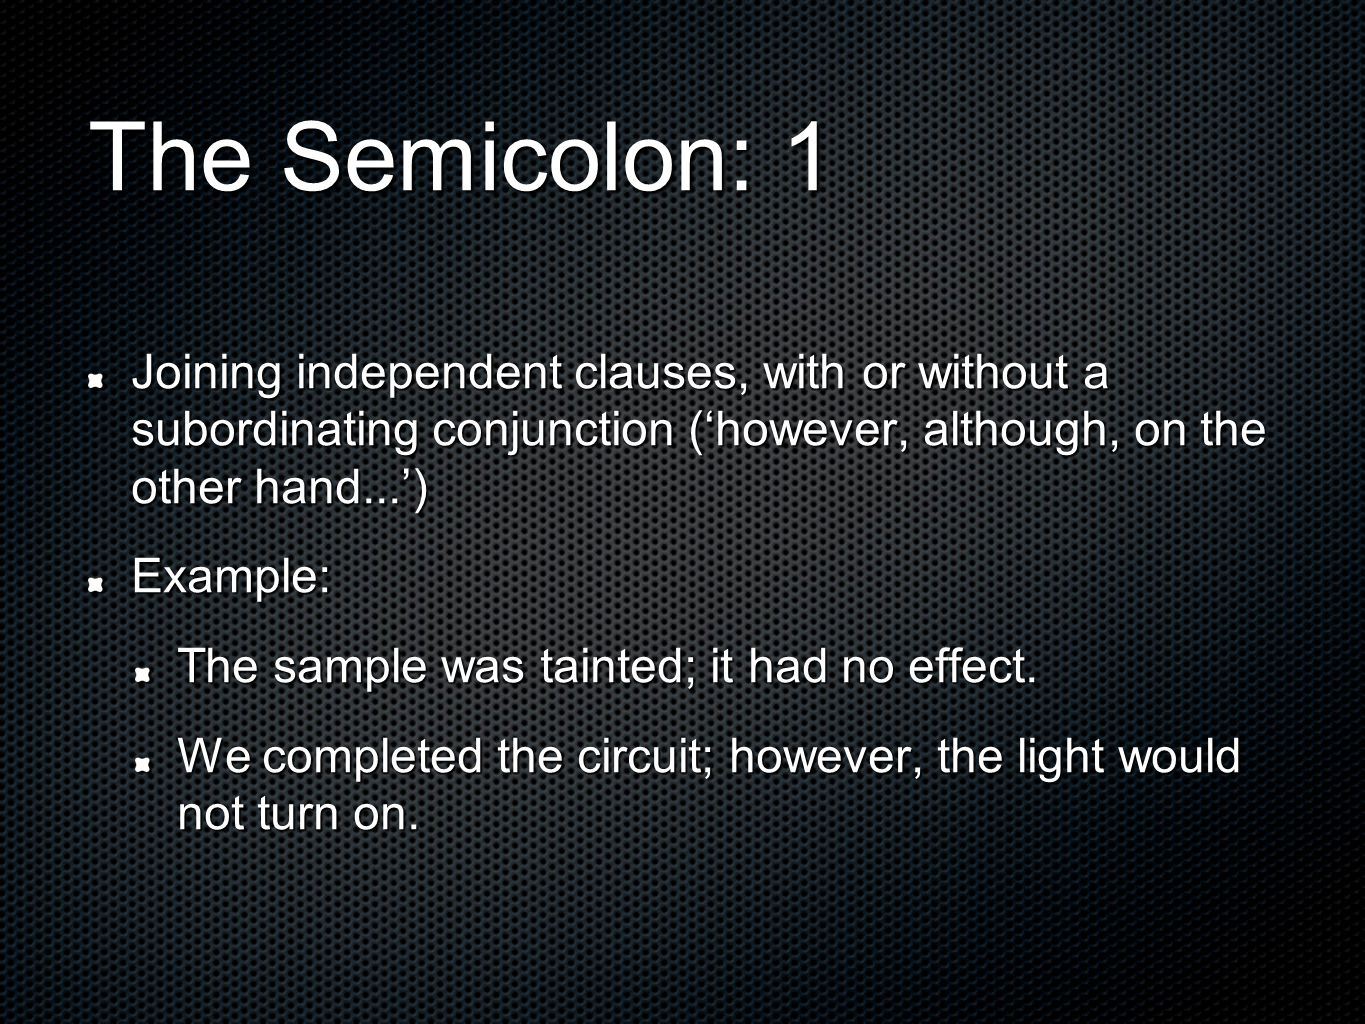 The Semicolon: 1 Joining independent clauses, with or without a subordinating conjunction ('however, although, on the other hand...') Example: The sample was tainted; it had no effect.